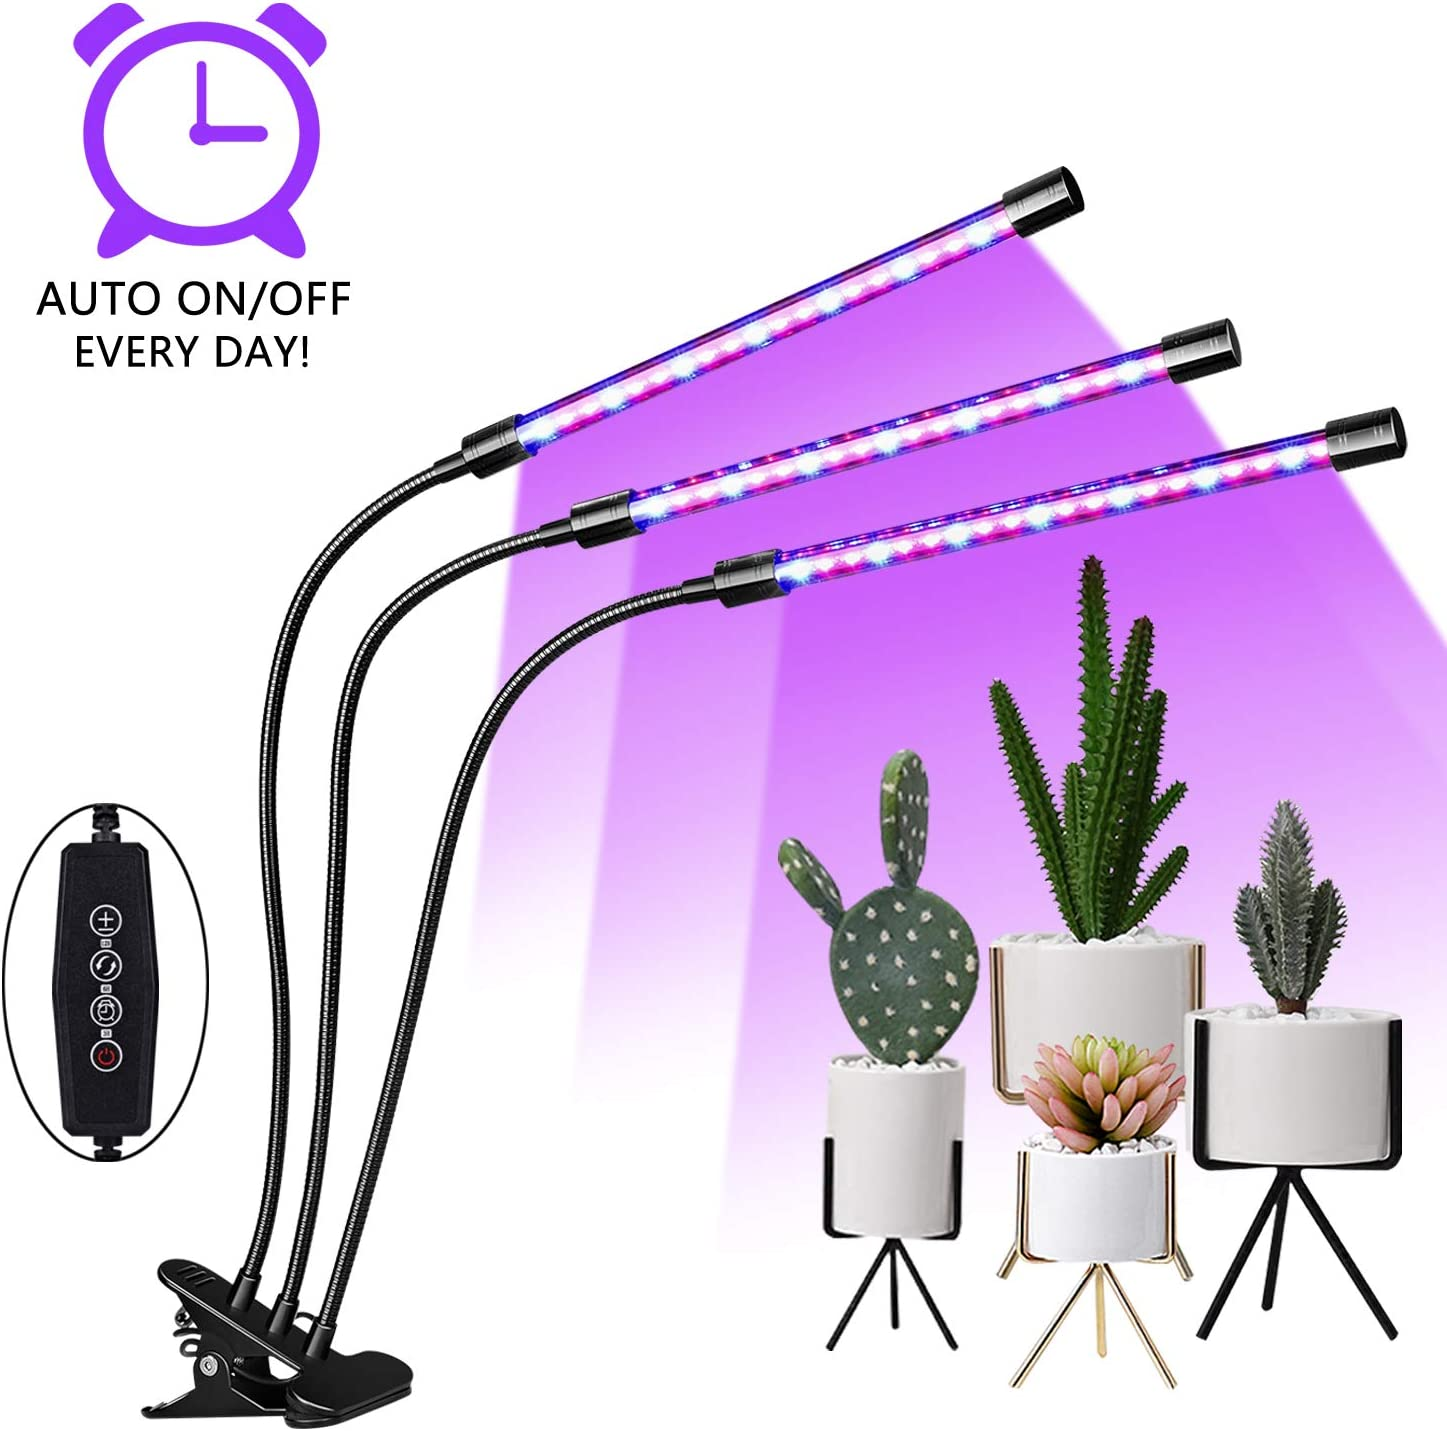 EMMMSUN Grow Light, 30W LED Grow Light with 3/6/12H Cycle Timing, 3-Head Adjustable Gooseneck Plant Light, 5 Dimmable Levels&3 Switch Modes for Indoor Plants